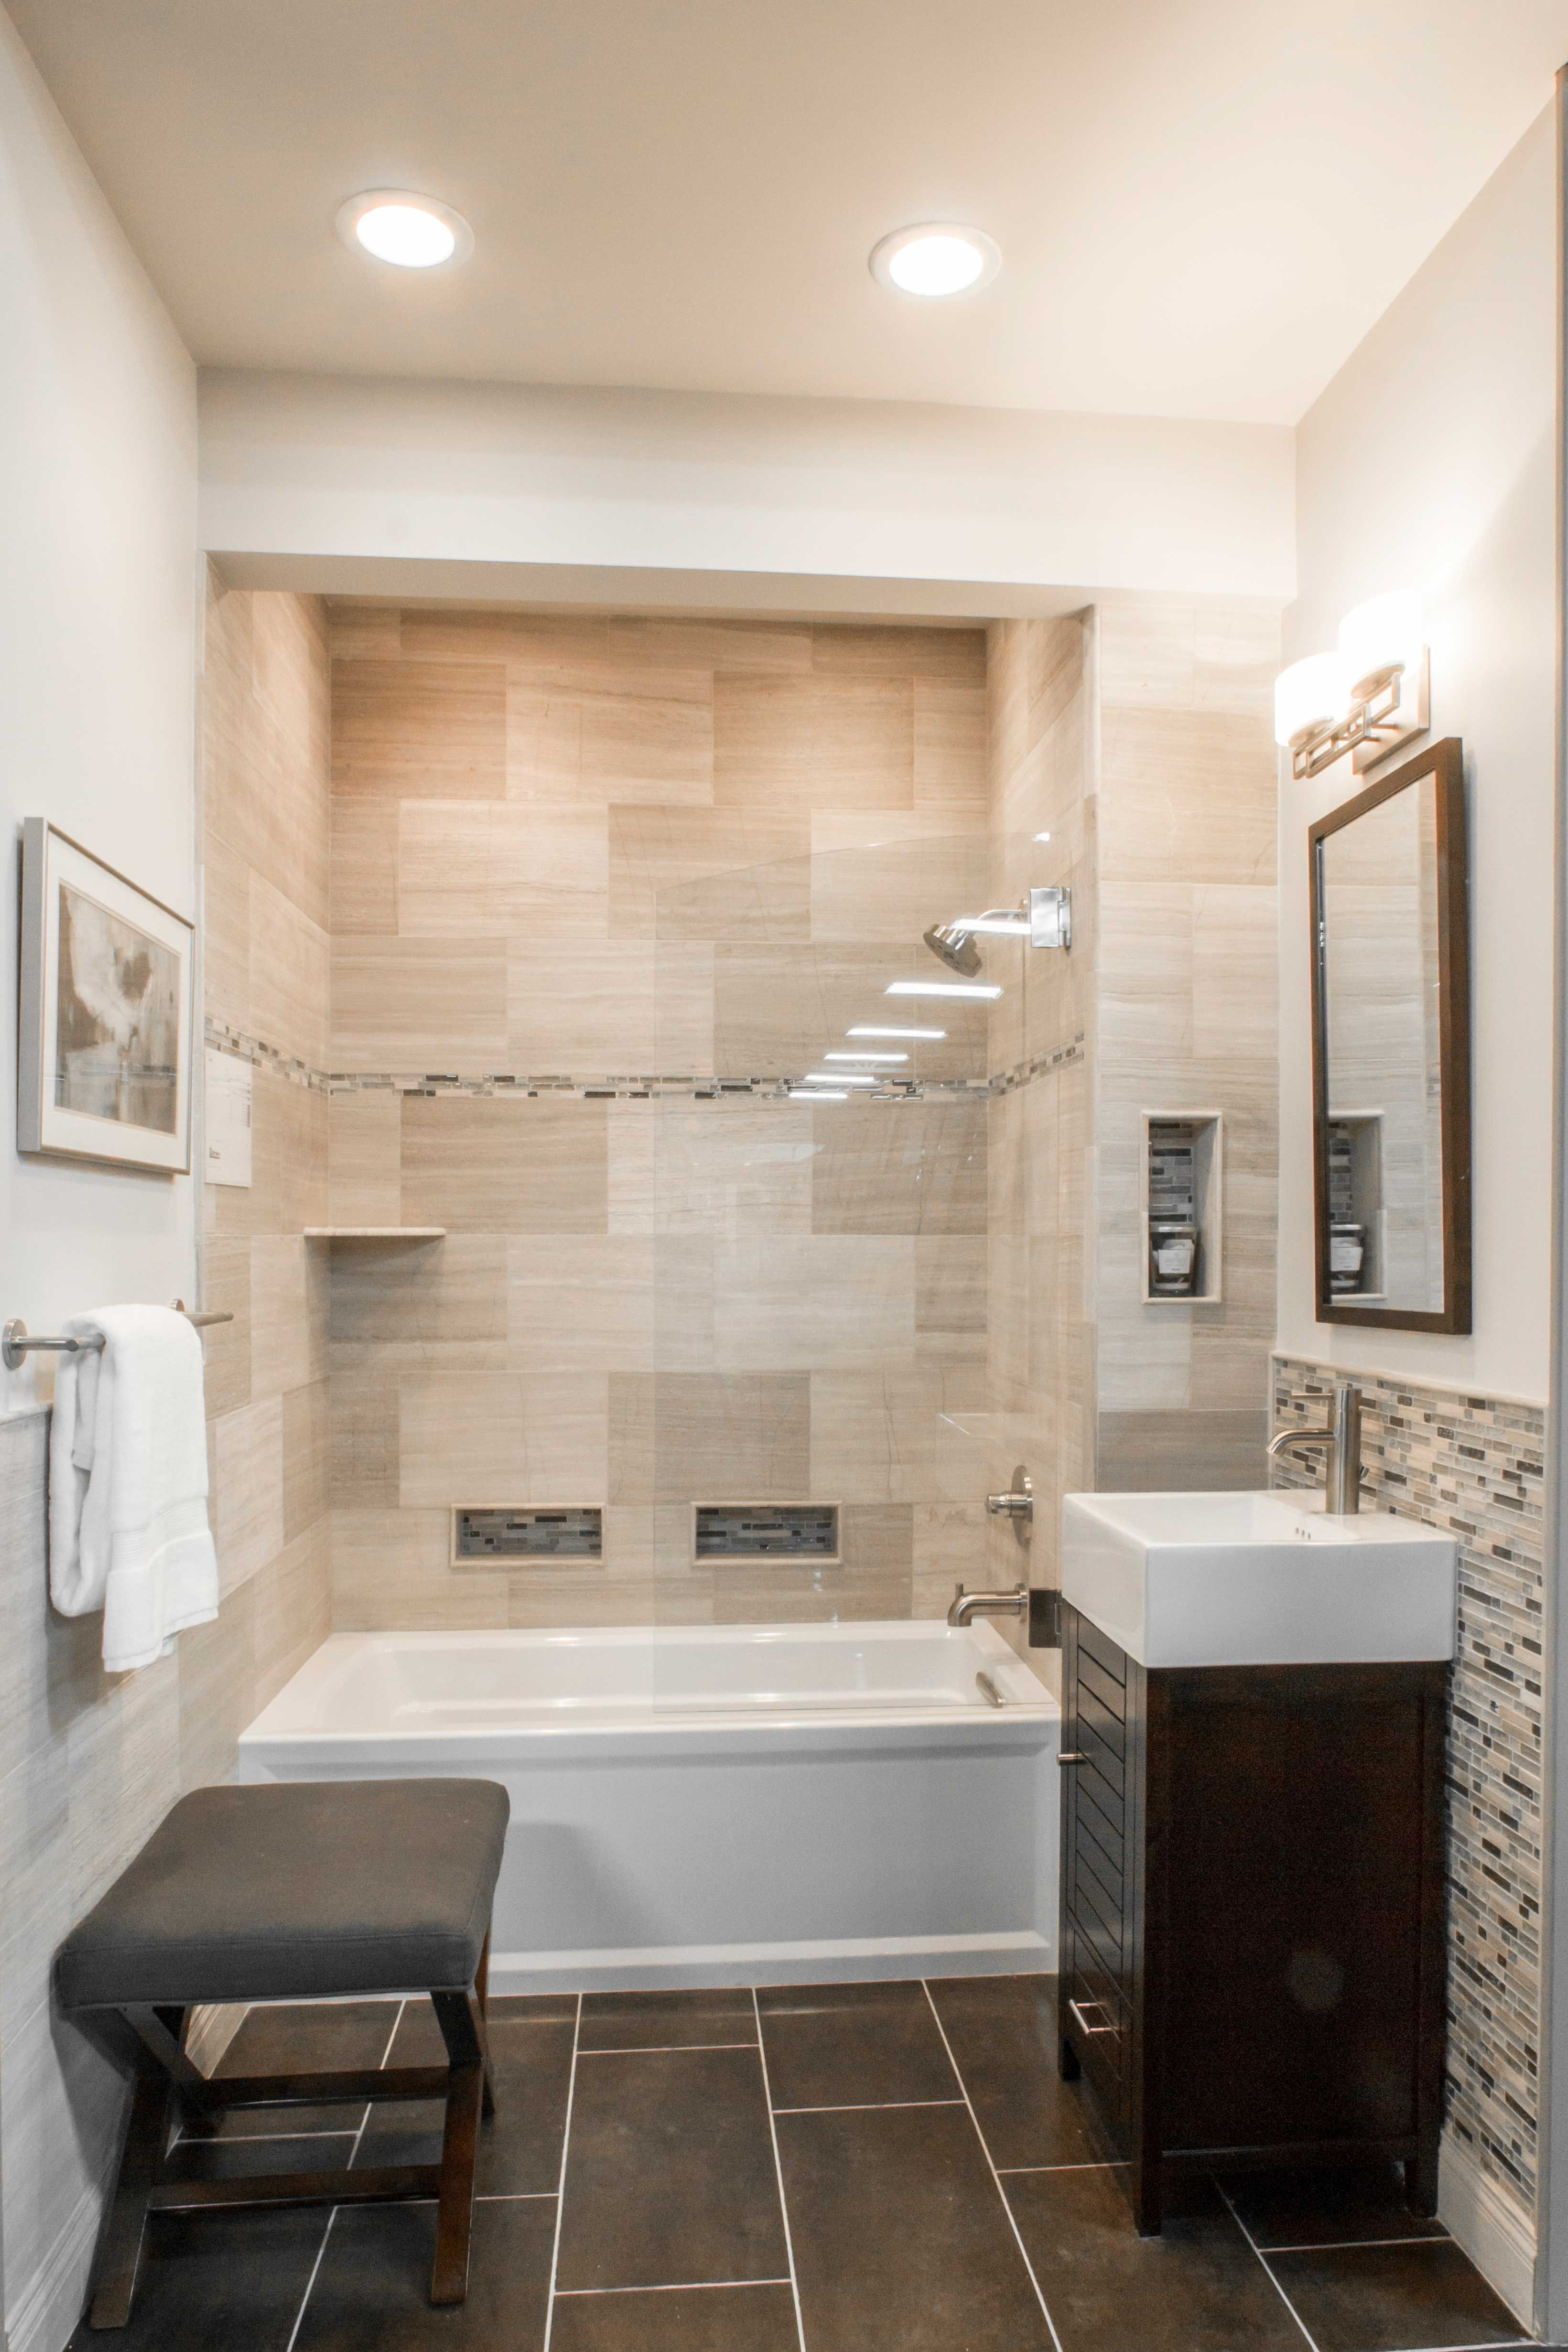 Traditional Transitional Or Contemporary Decor Bathroom Wall Tile Legno Travertine